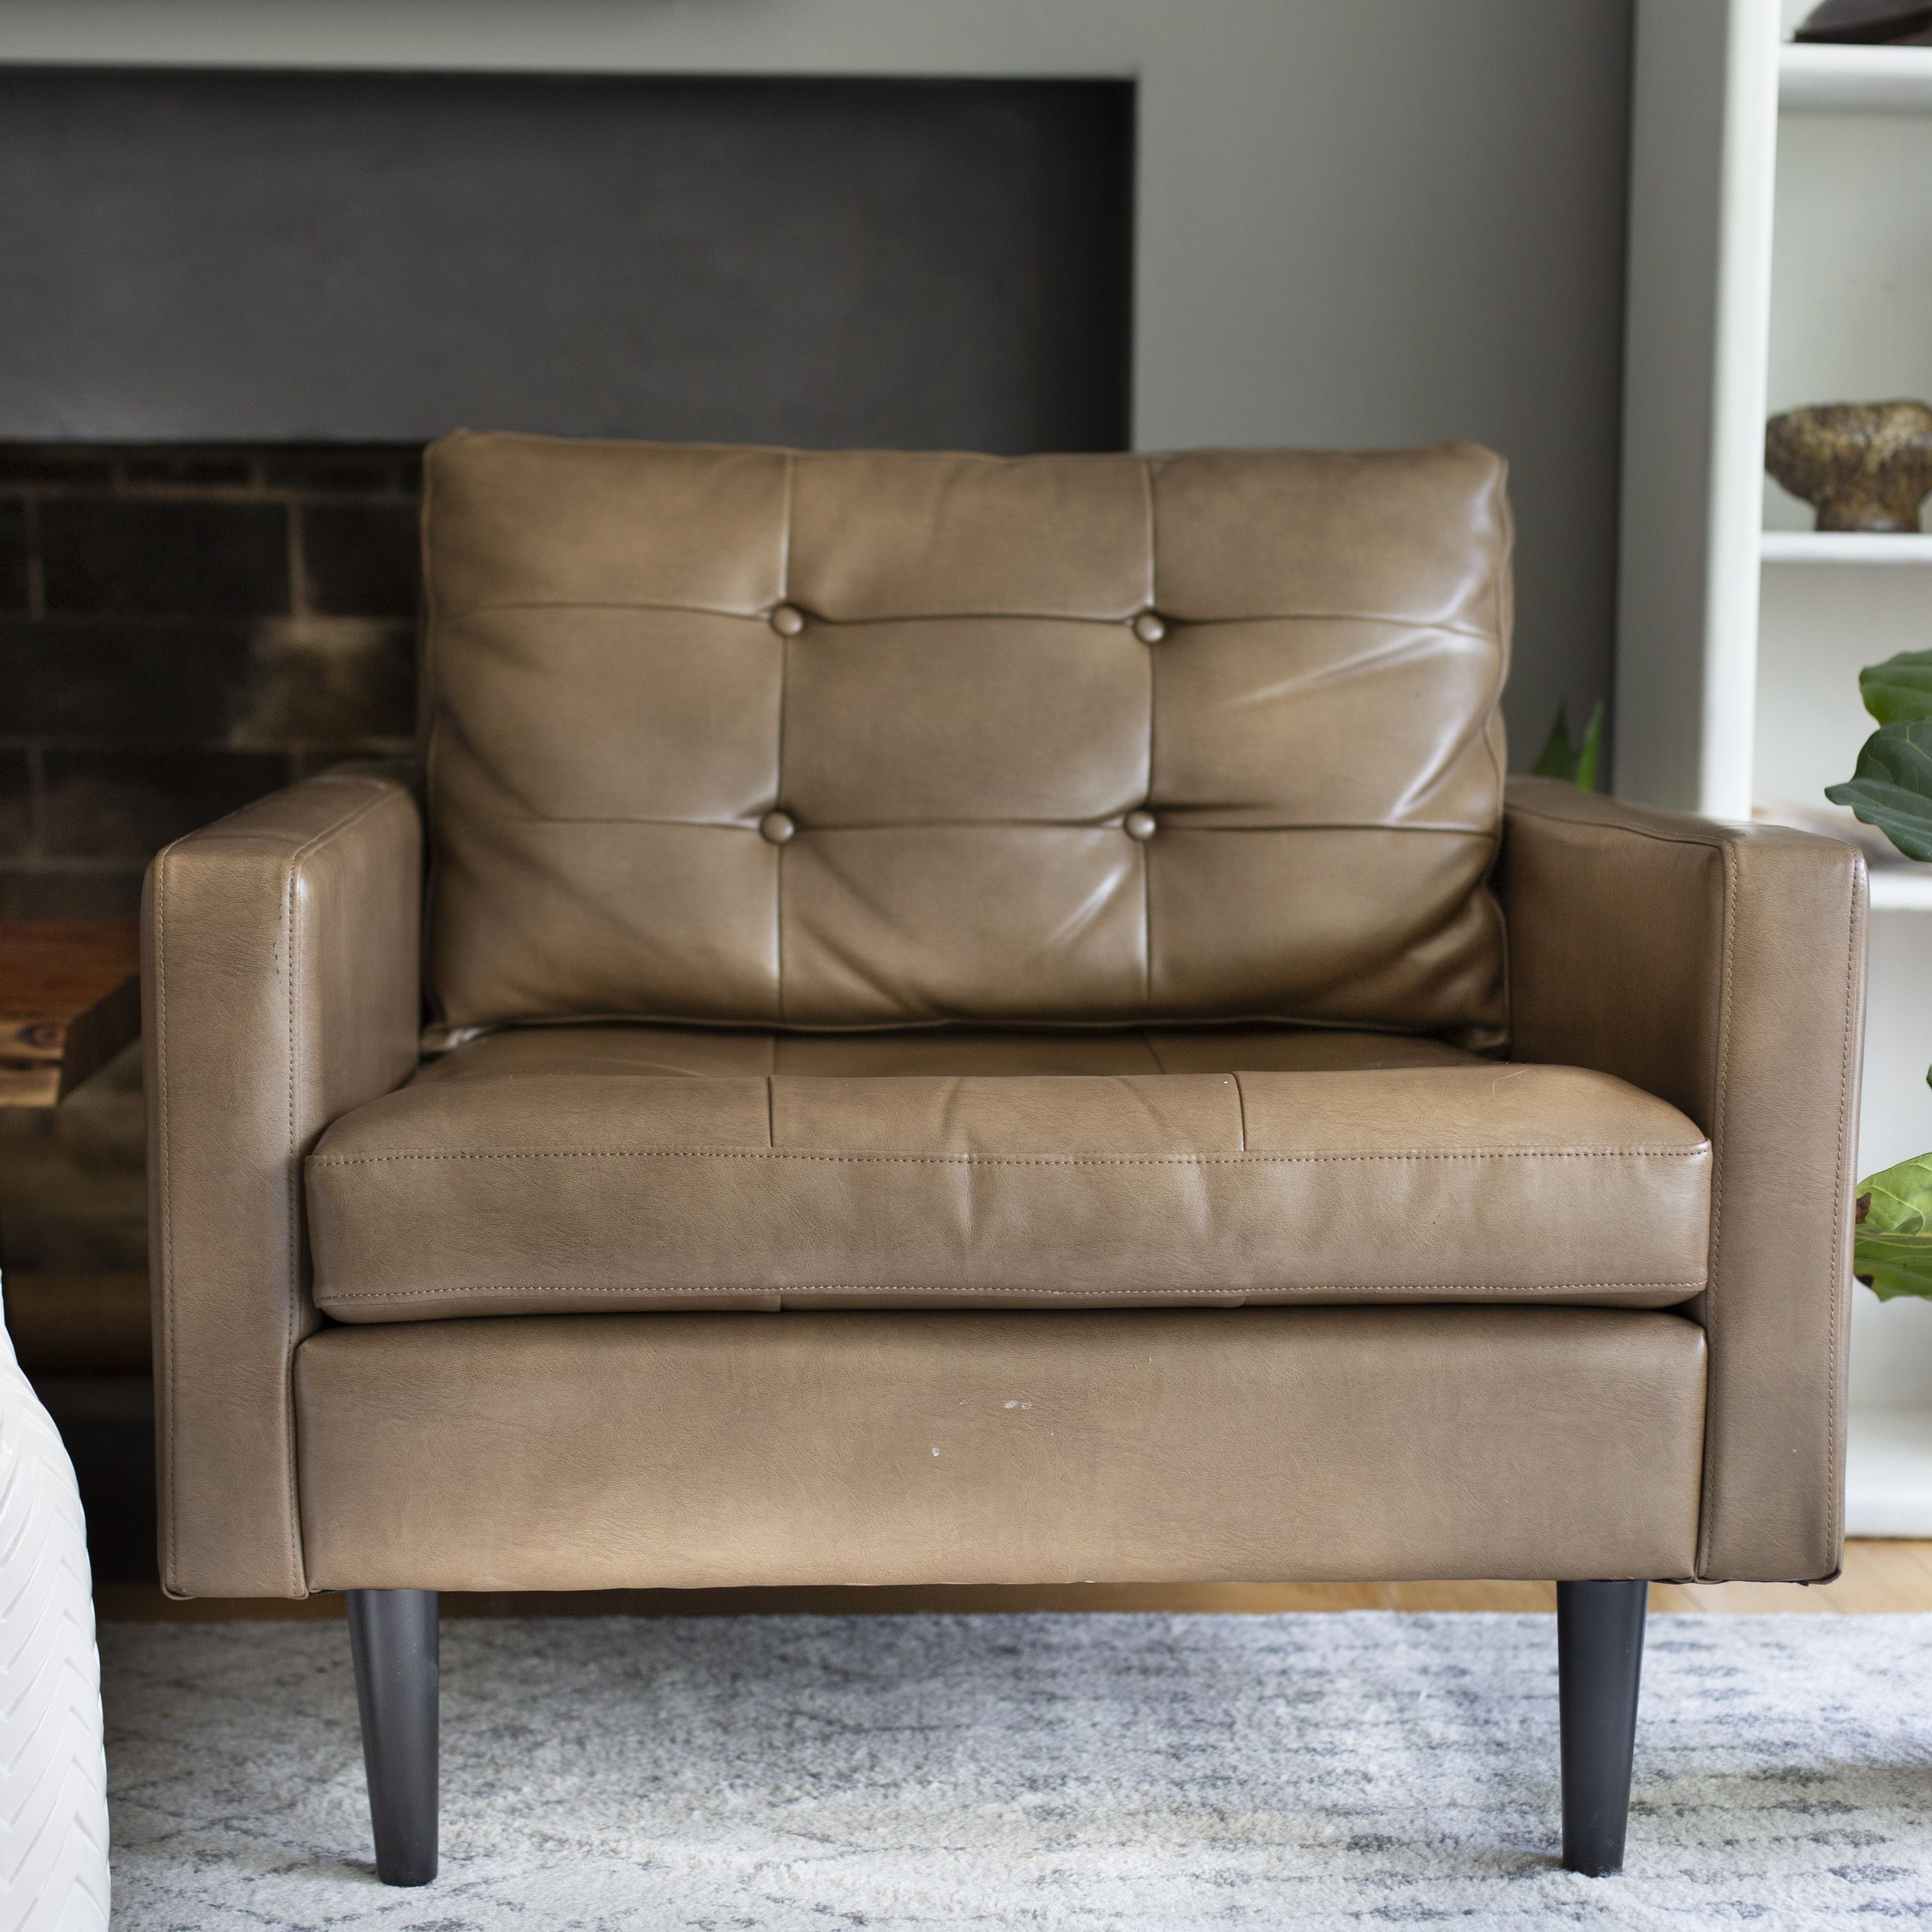 How To Clean Leather Furniture